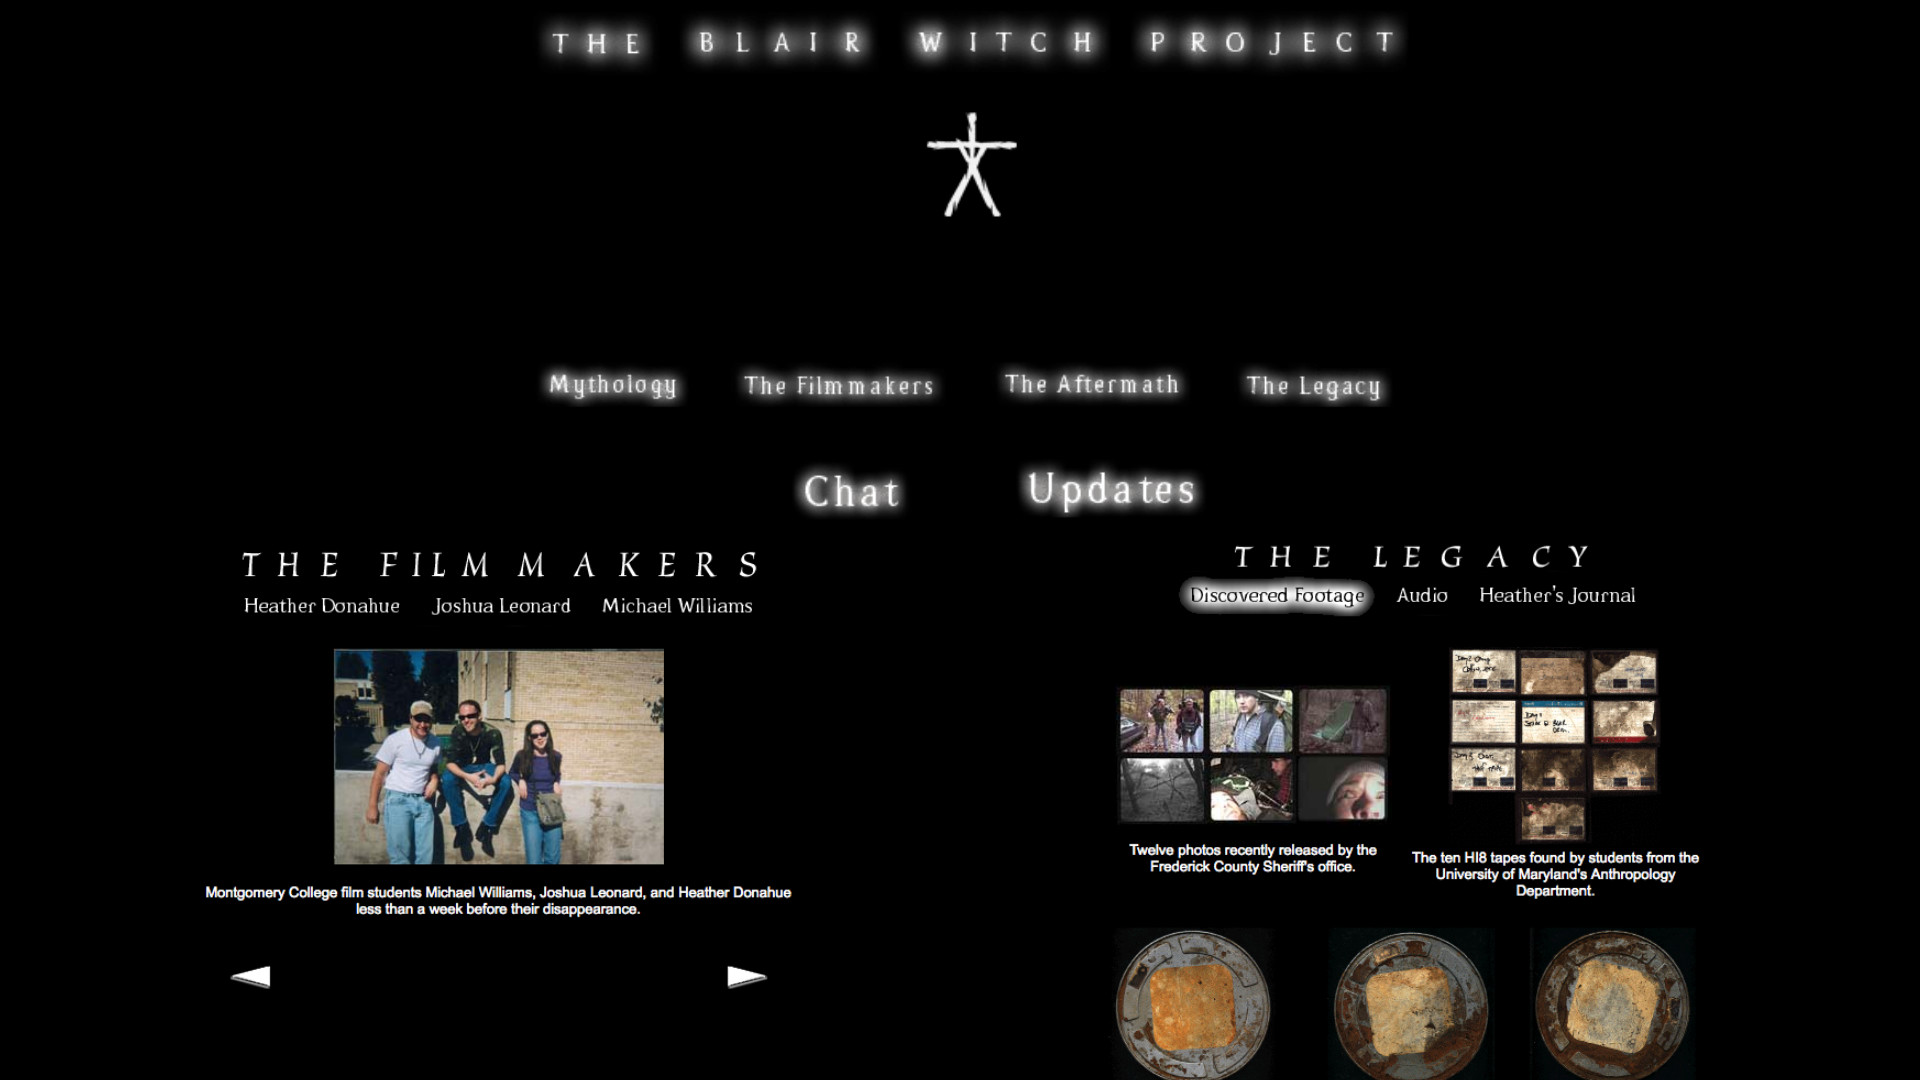 Blair Witch Project's original website from 1999